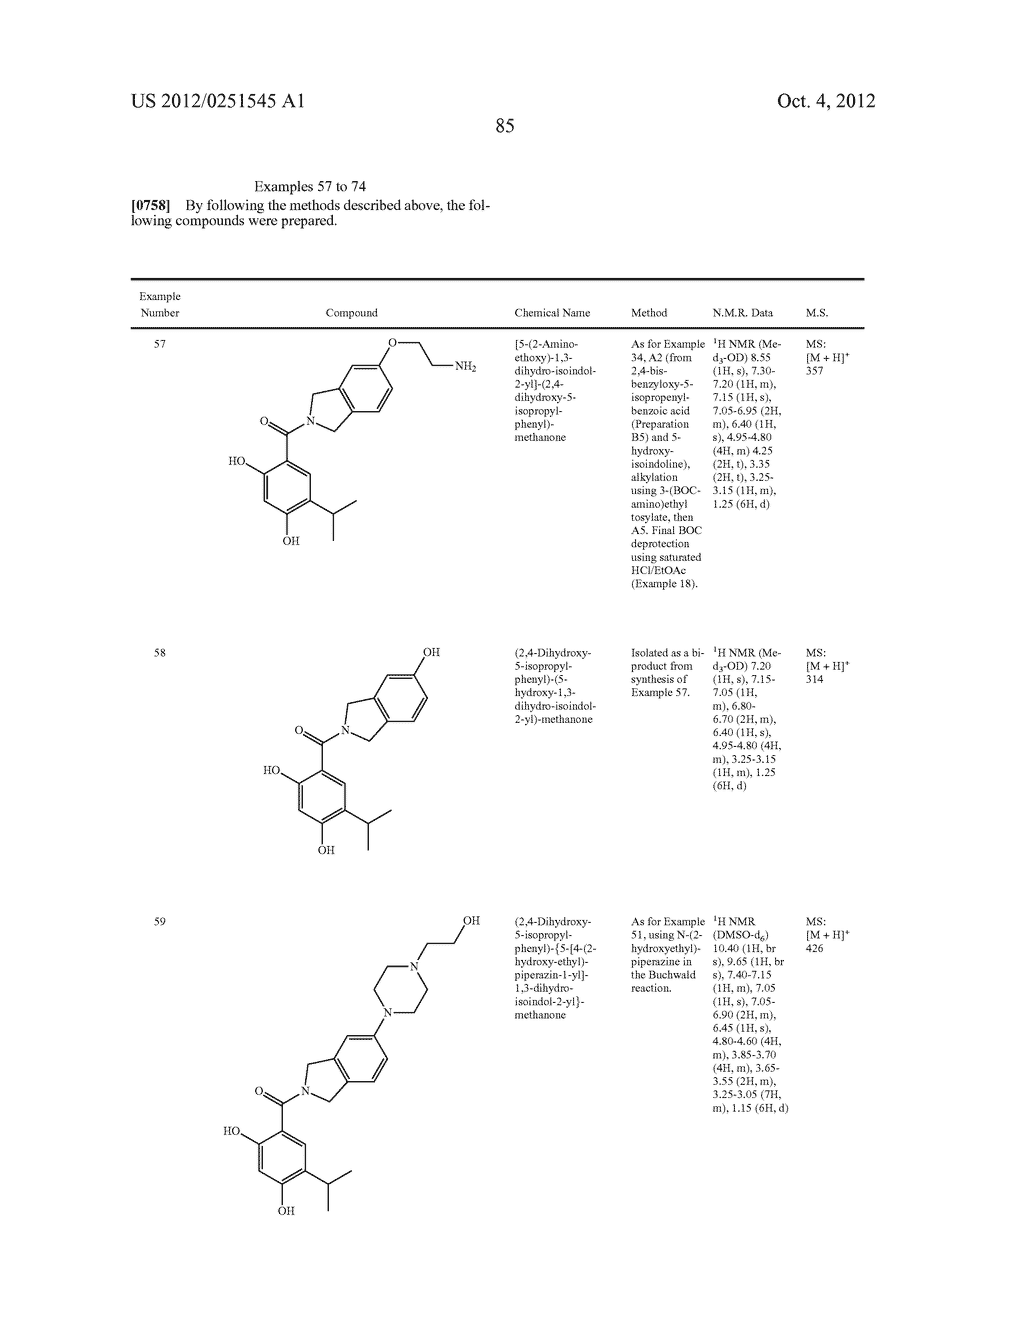 Therapeutic Combinations Of Hydroxybenzamide Derivatives As Inhibitors Of     HSP90 - diagram, schematic, and image 86